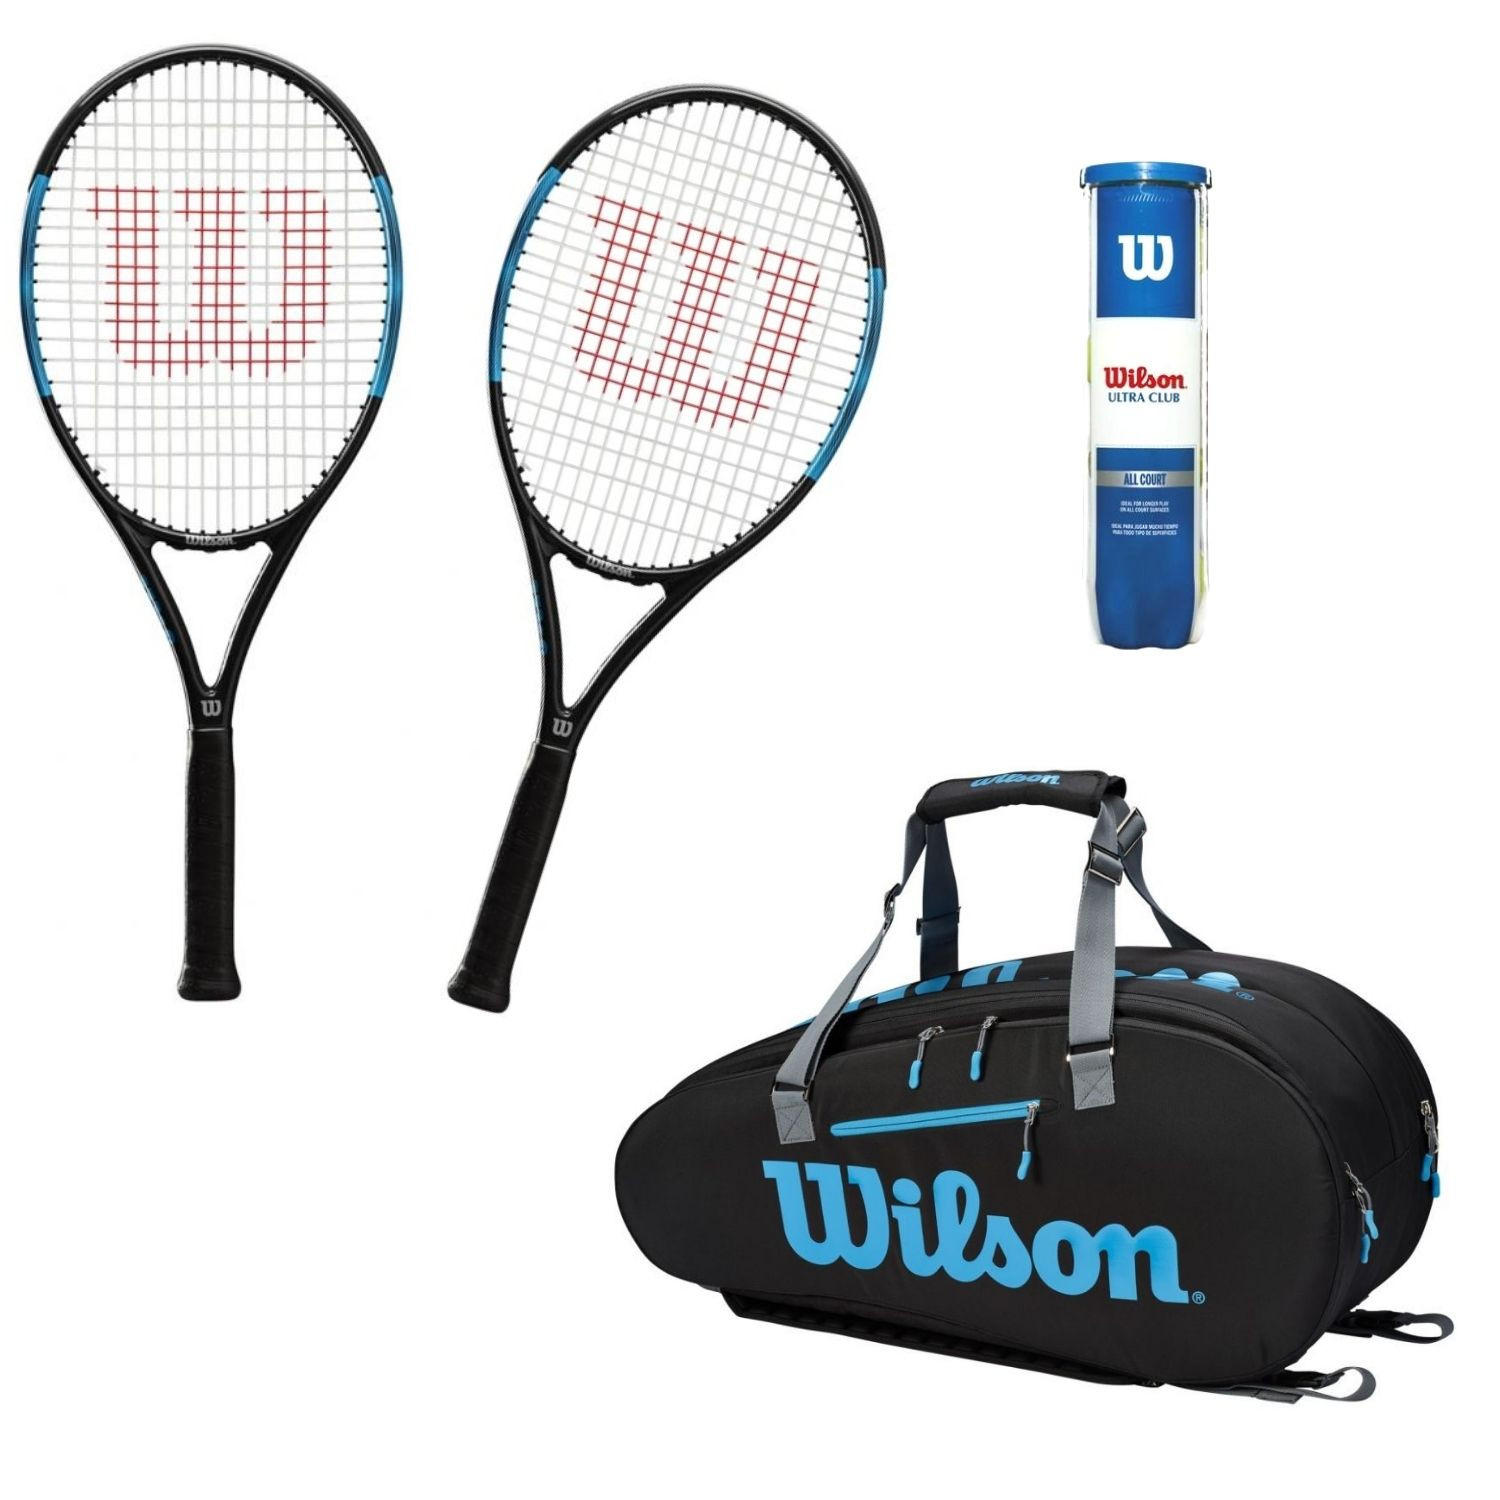 Tenisový set WILSON Ultra Power PRO 105  Vak Ultra 9pack  Loptičky Ultra Club All Court Modrá L2